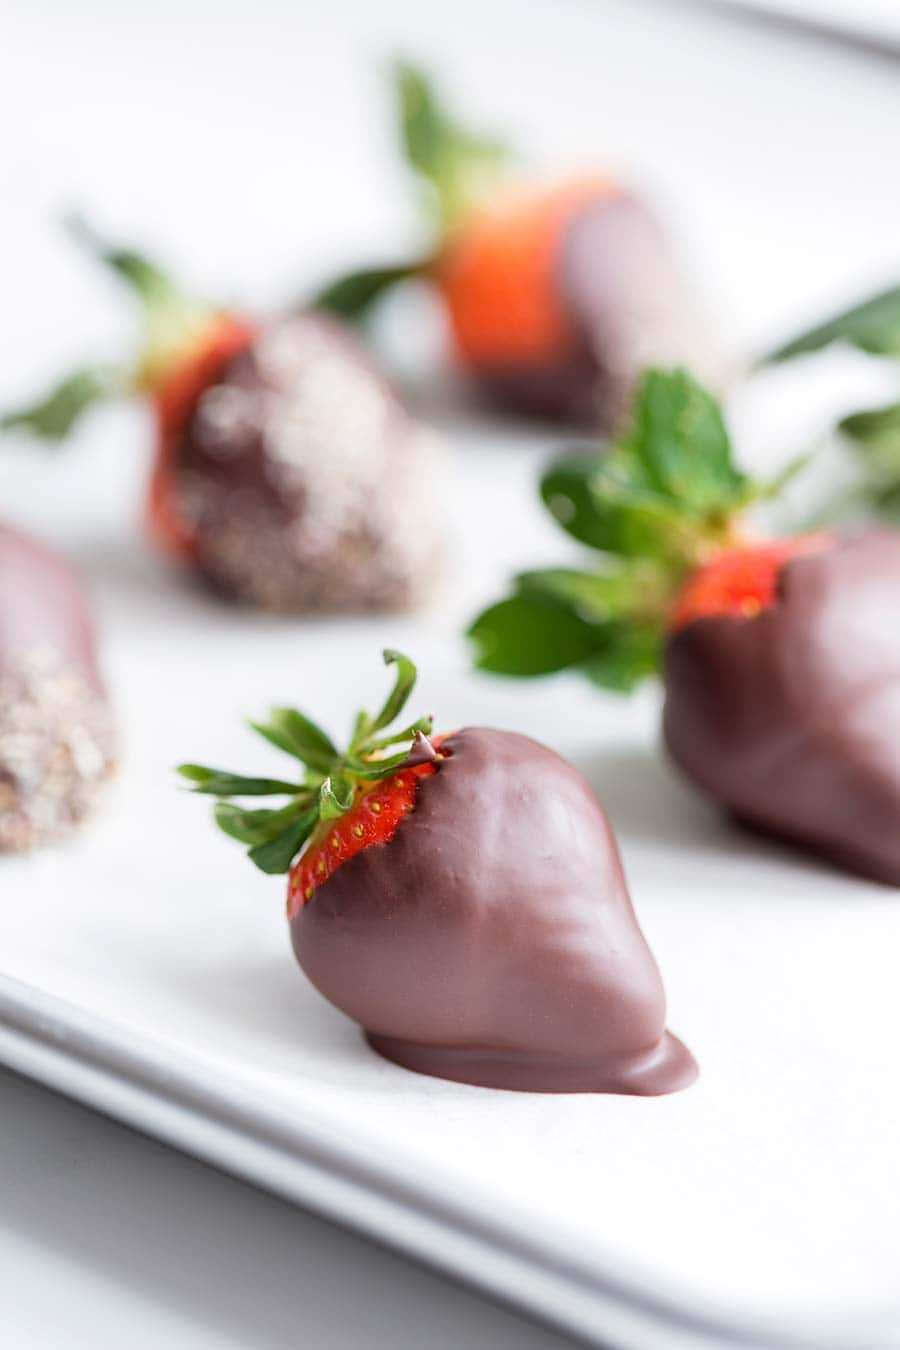 A photo of chocolate dipped strawberries